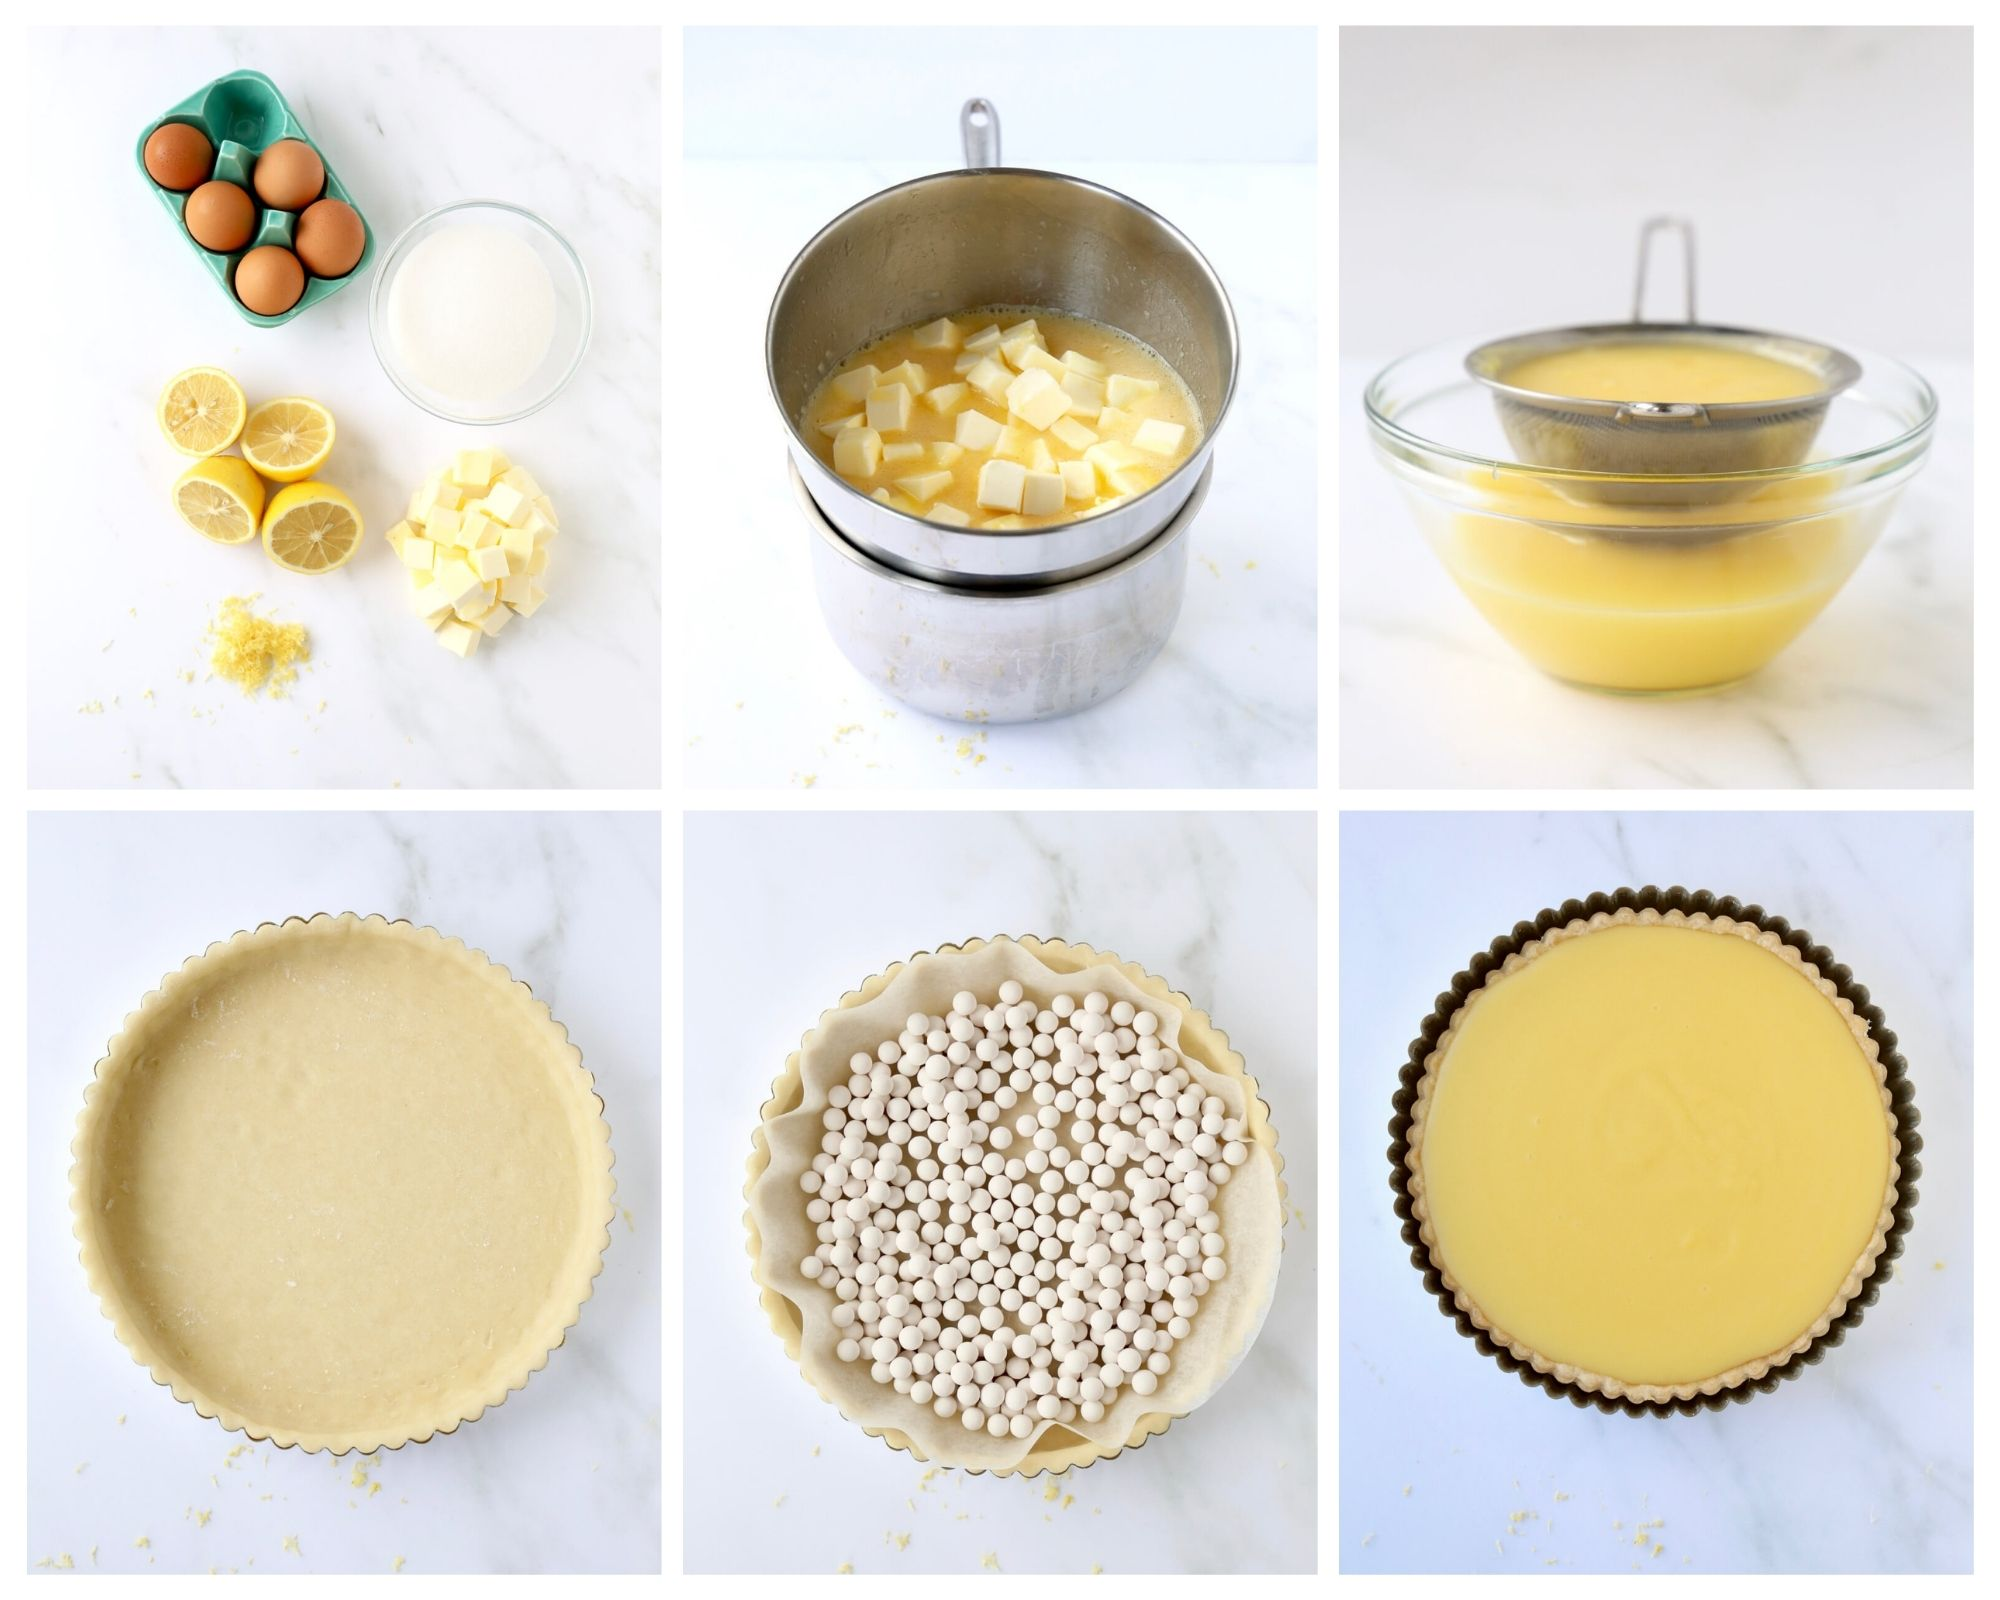 six step process of how to make a lemon tart starting with the ingredients, the tart shell and filling the tart with lemon curd